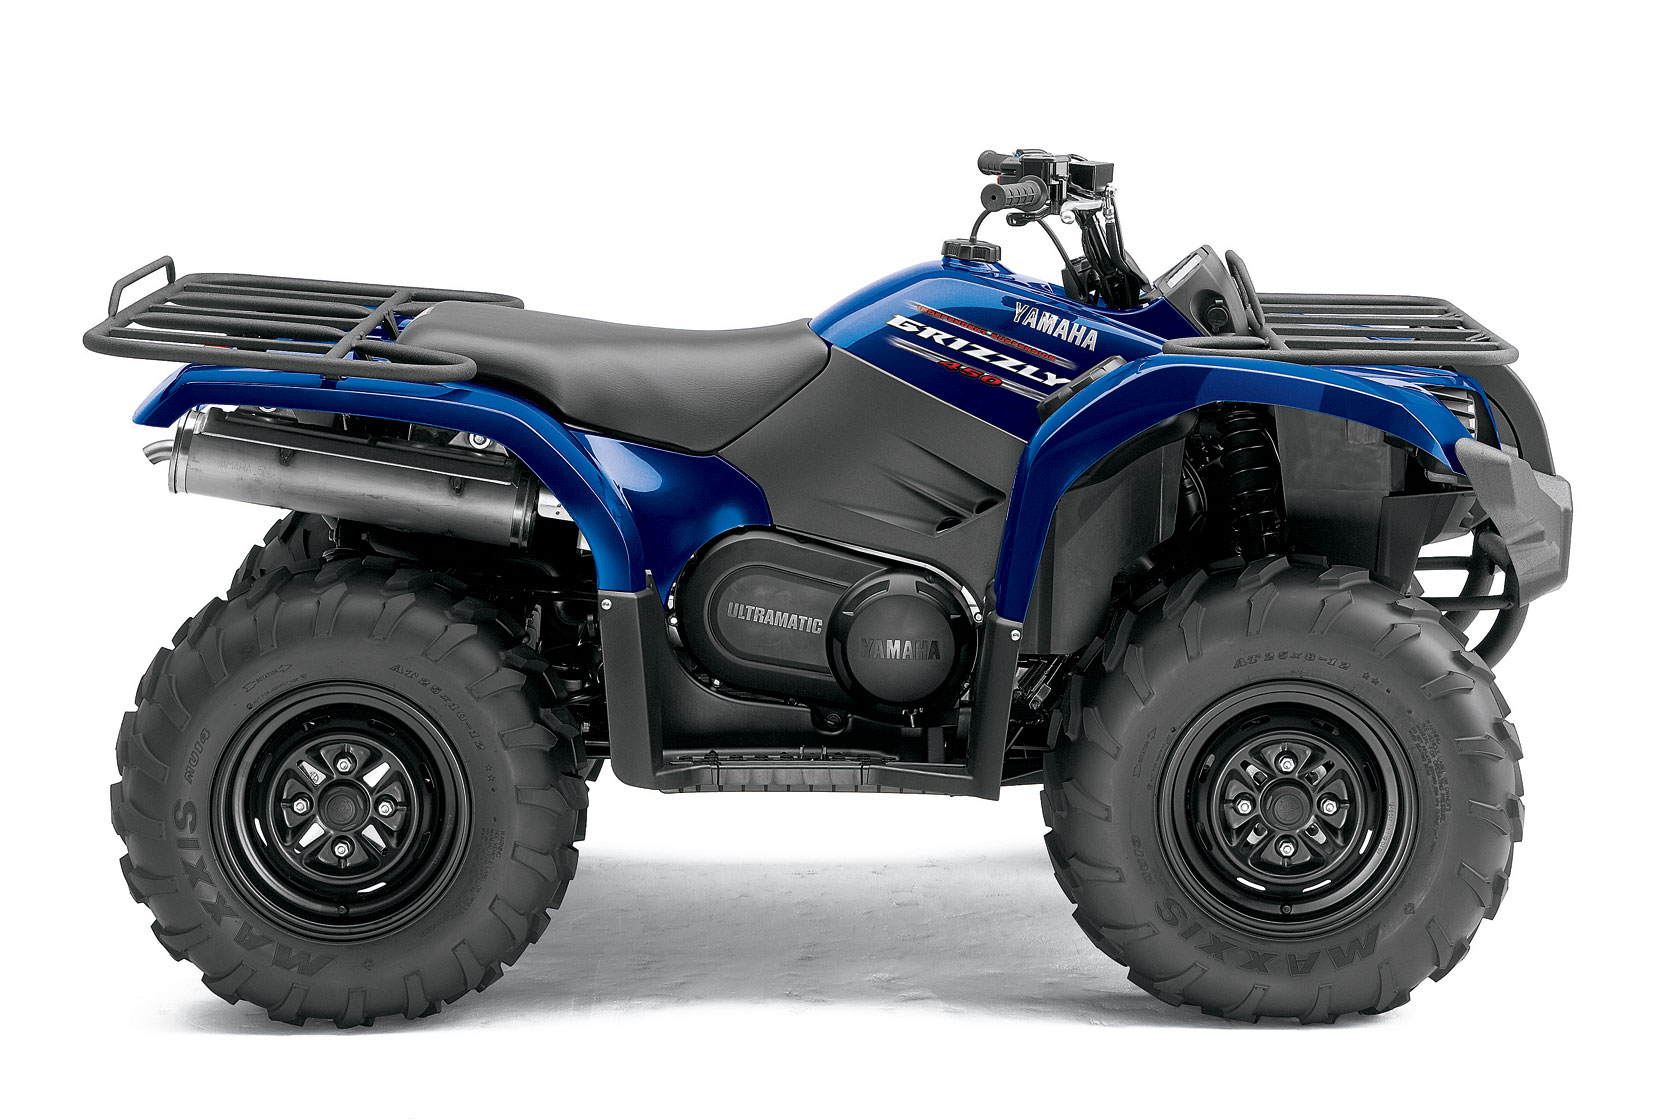 Yamaha Grizzly 450 4x4 Specs - 2010  2011